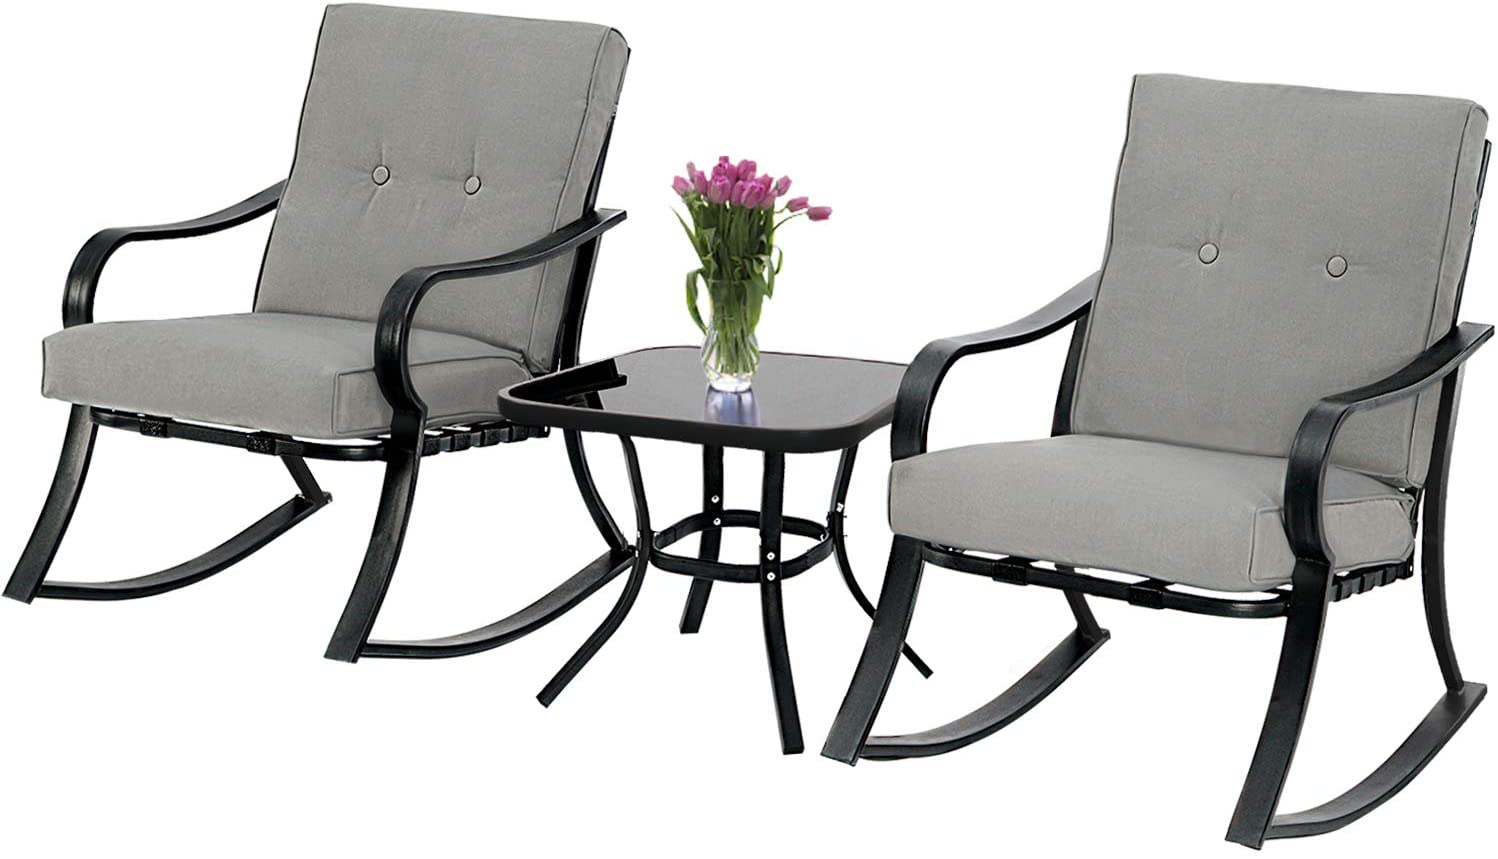 suncrown outdoor 3 piece rocking chairs bistro set black metal patio furniture with grey thickened cushion and glass top coffee table